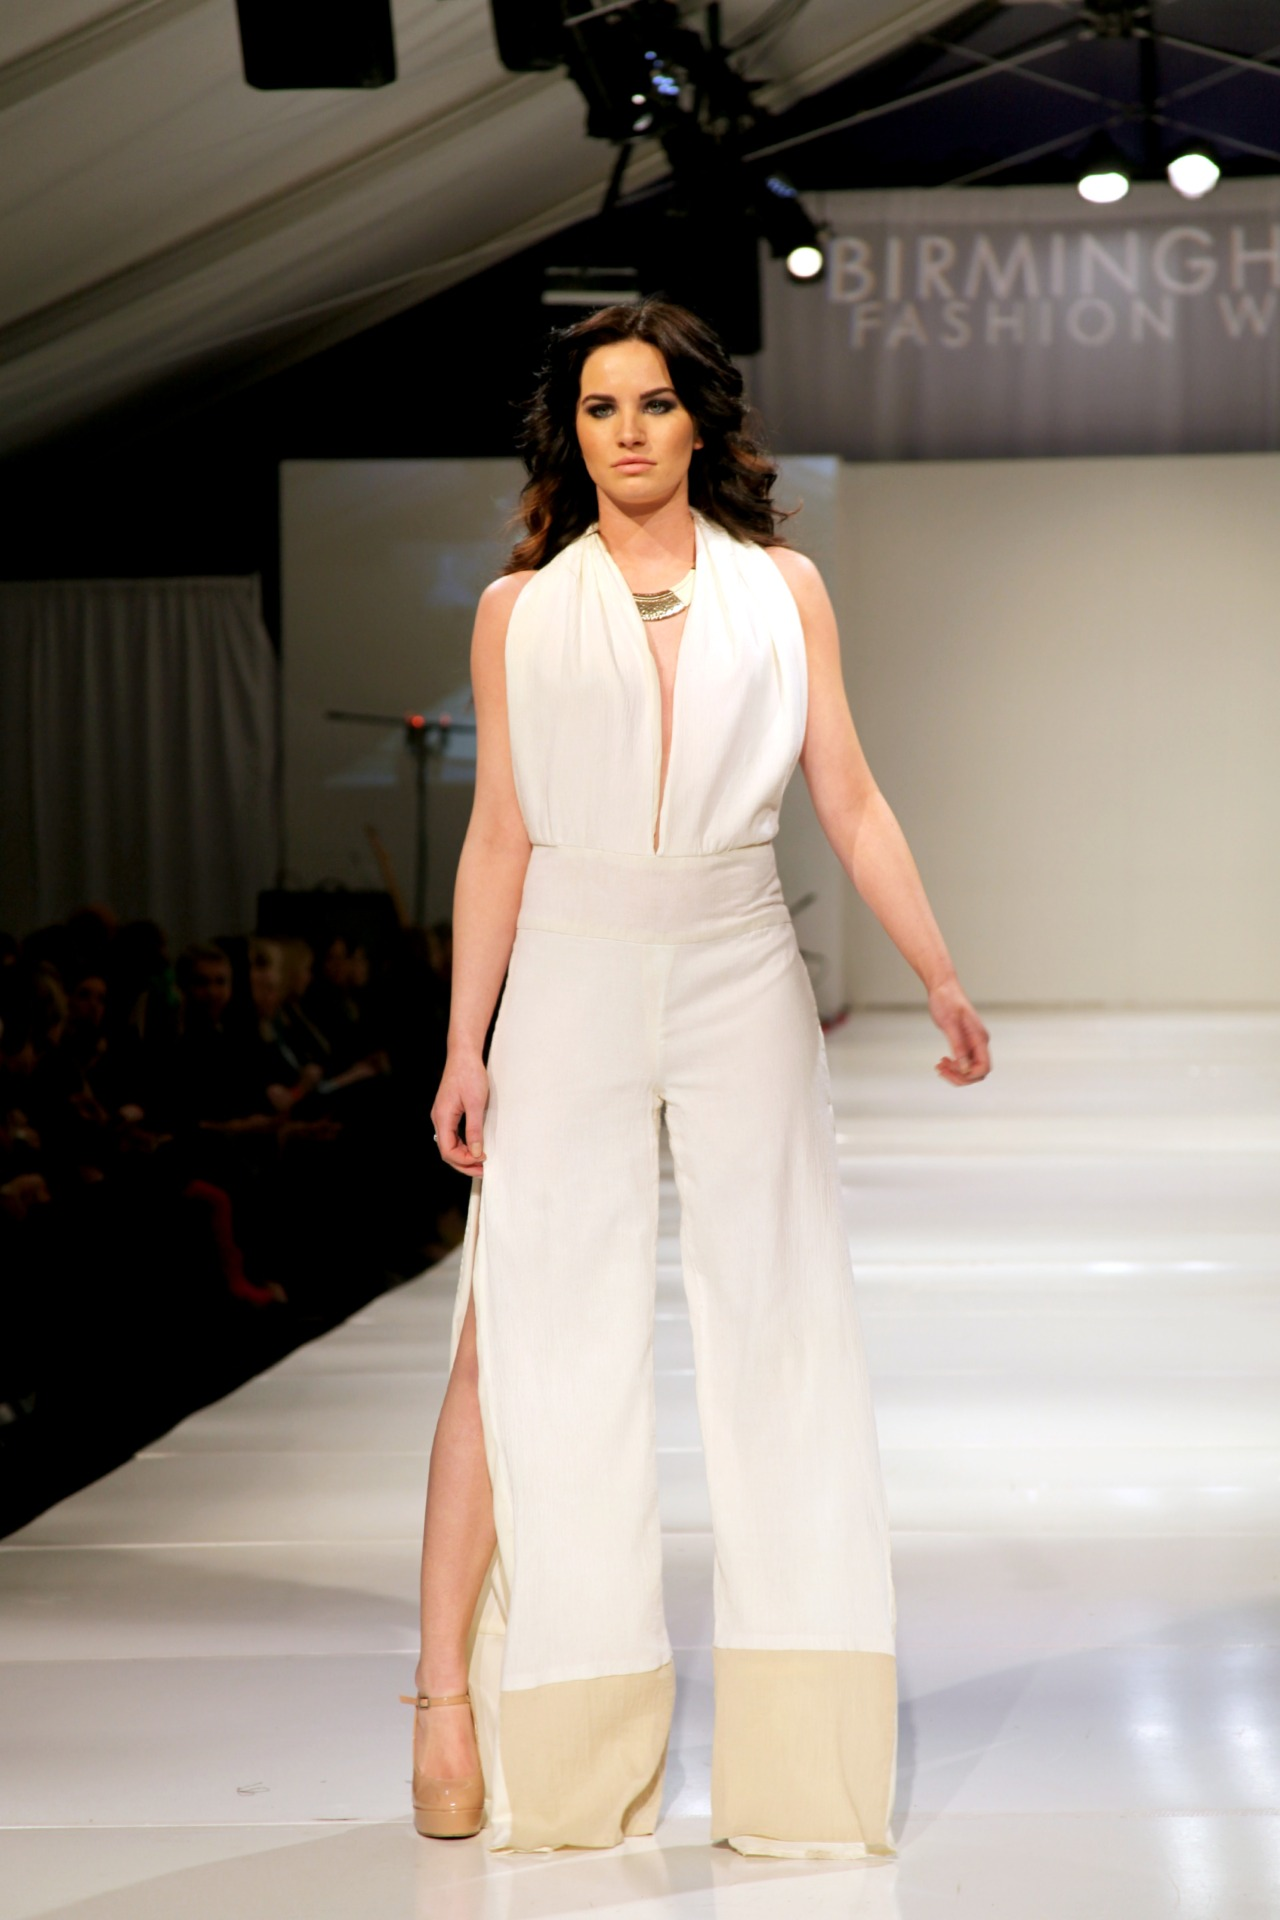 Designed by Mandi Faulk-Birmingham Fashion Week 2013 Thursday Night Runway Show. PHOTO CREDIT: NATALIE NORRIS PHOTOGRAPHY